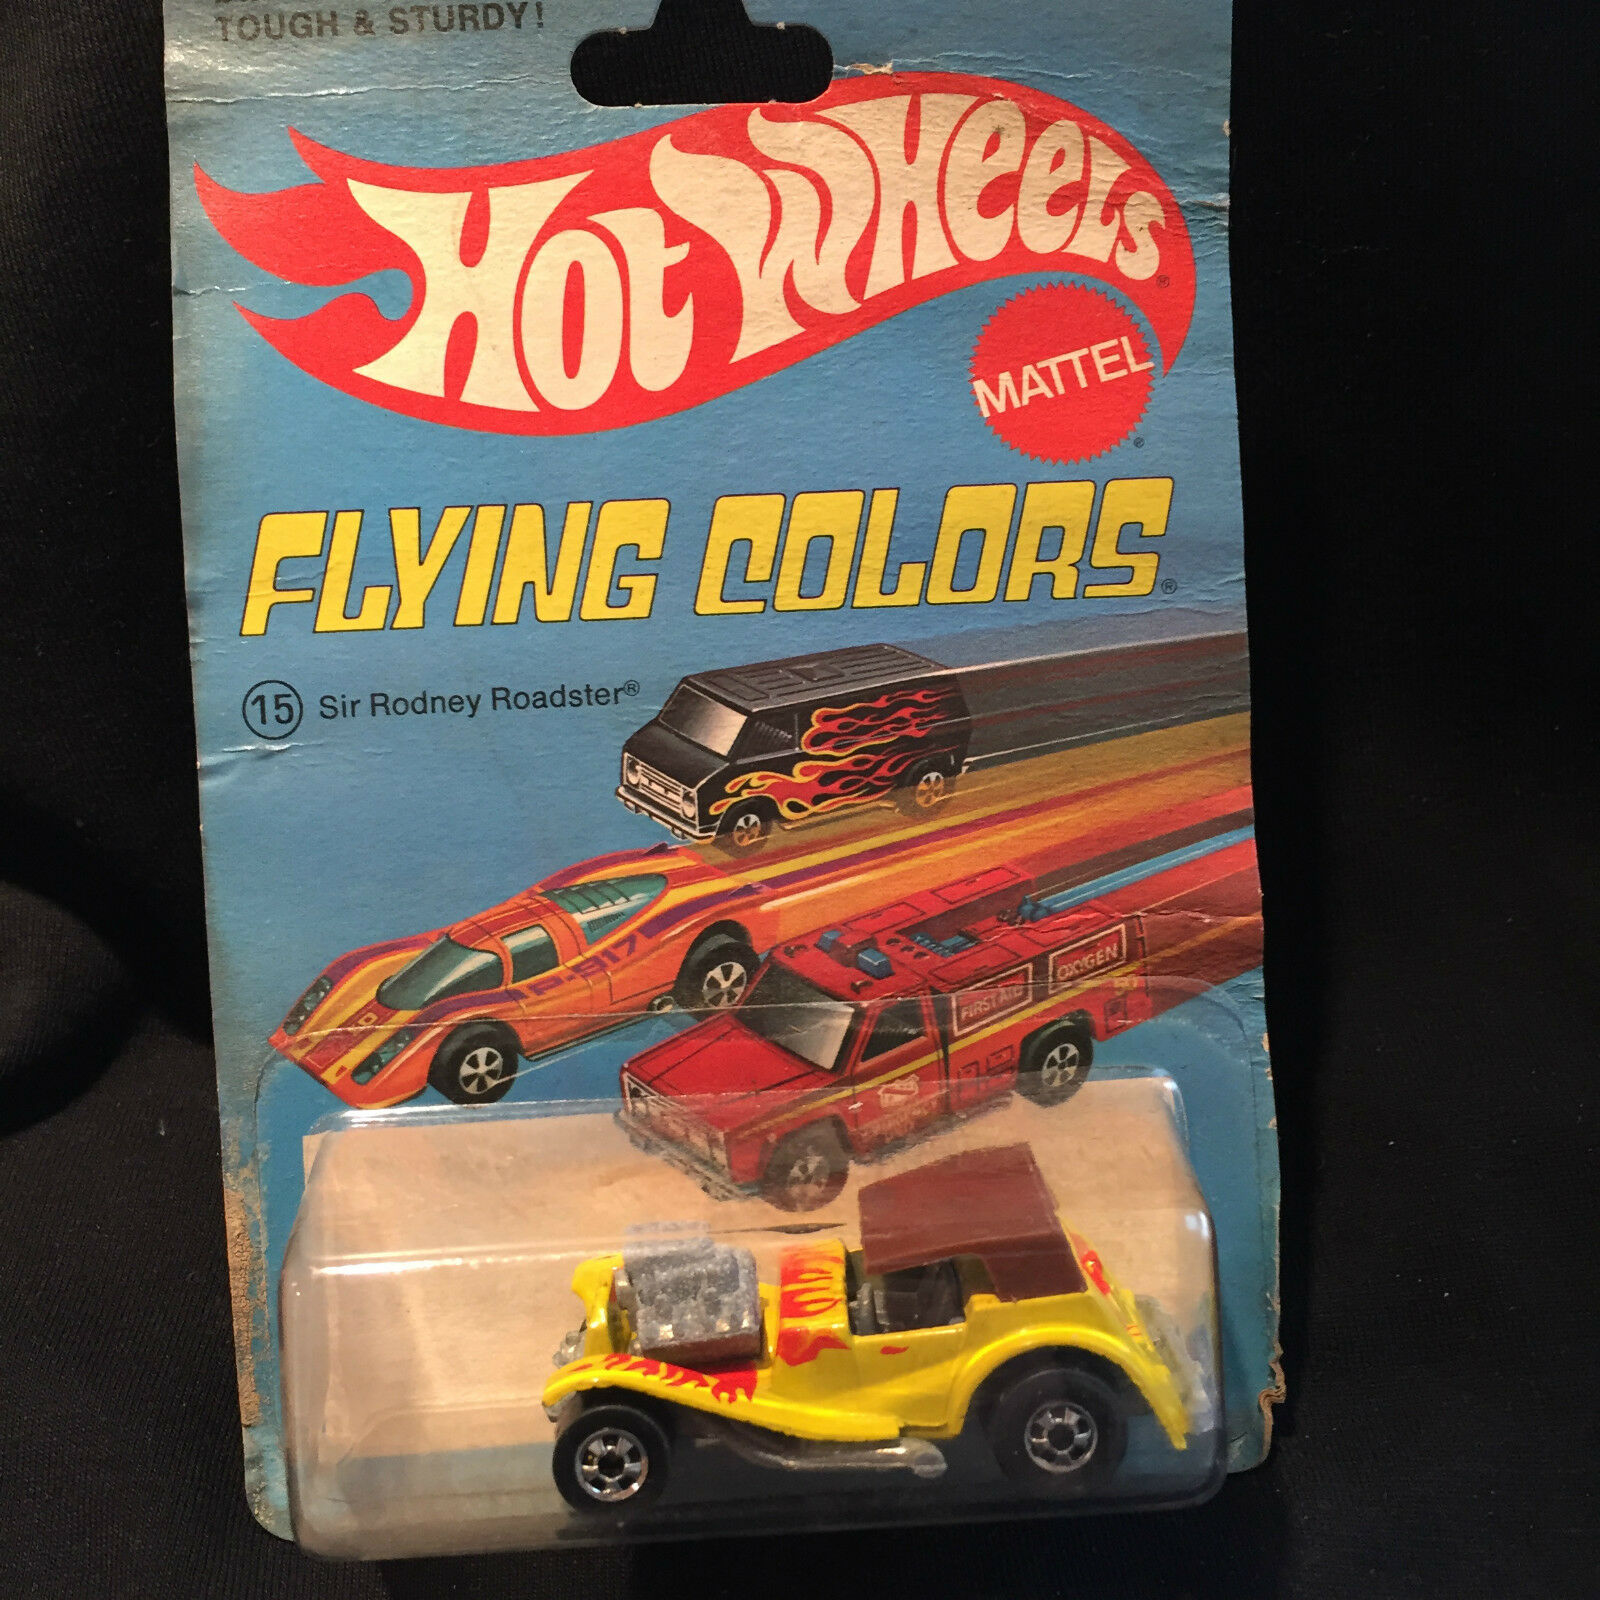 1977 Mattel Hot Wheels Flying Couleurs - (15) sir rodney Roadster  8261